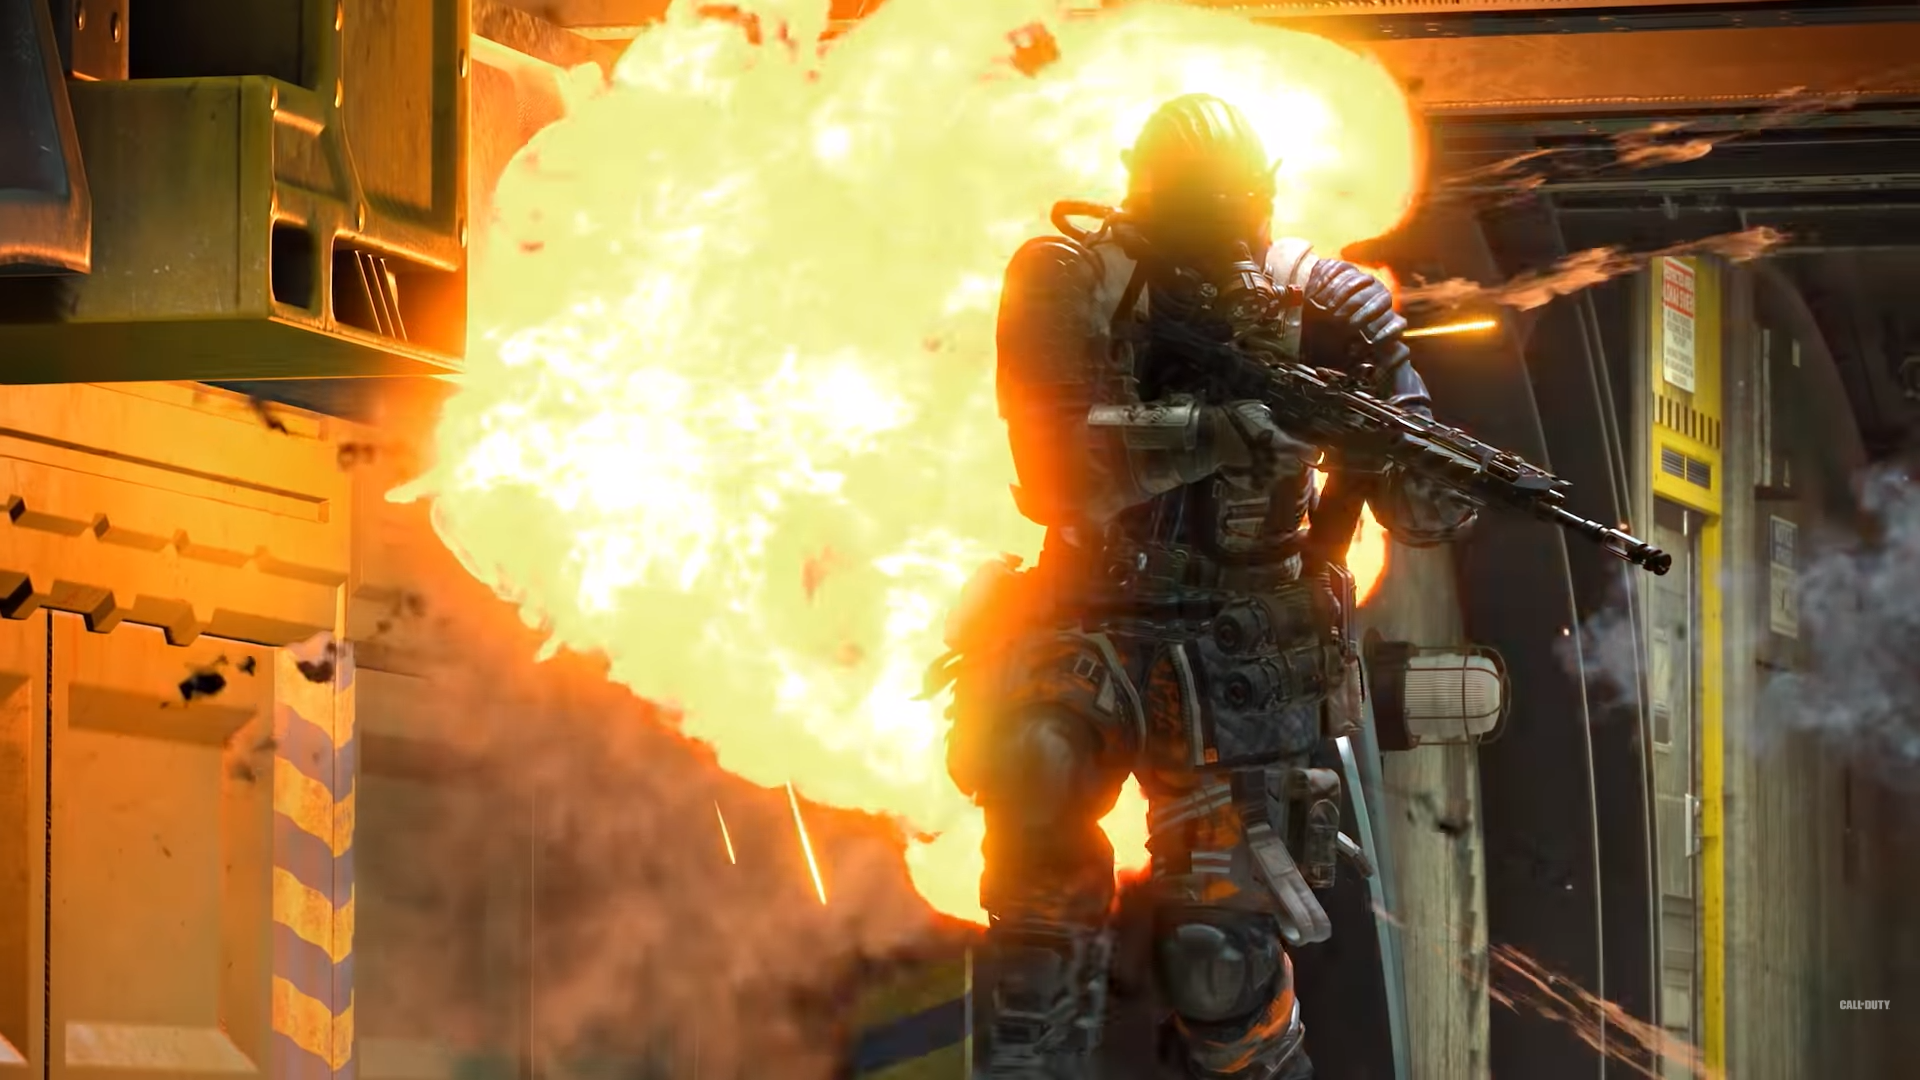 Call of Duty: Black Ops 4 is borrowing from Counter-Strike